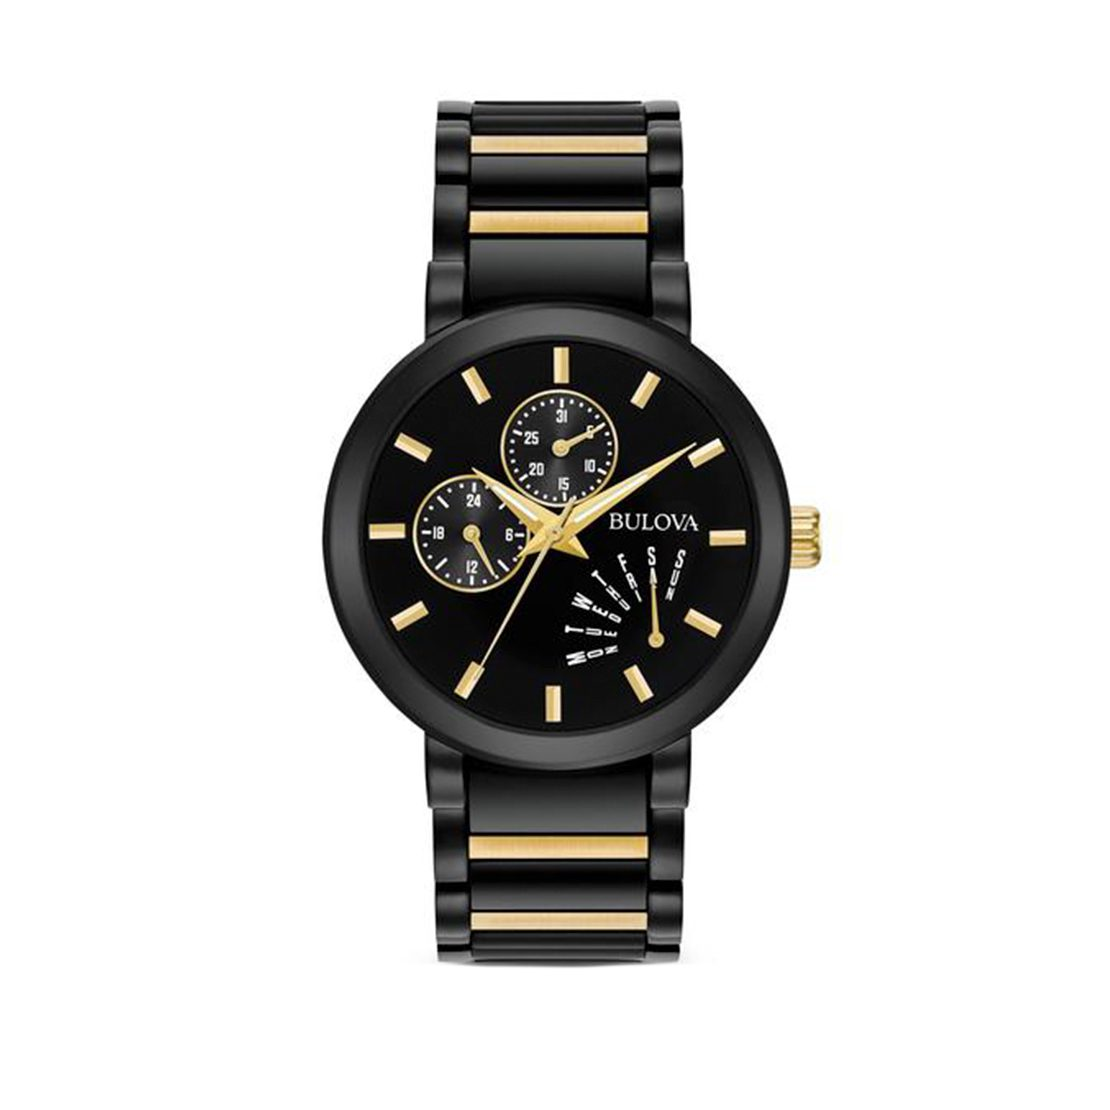 Men's Bulova Watch with black IP stainless steel case and black dial